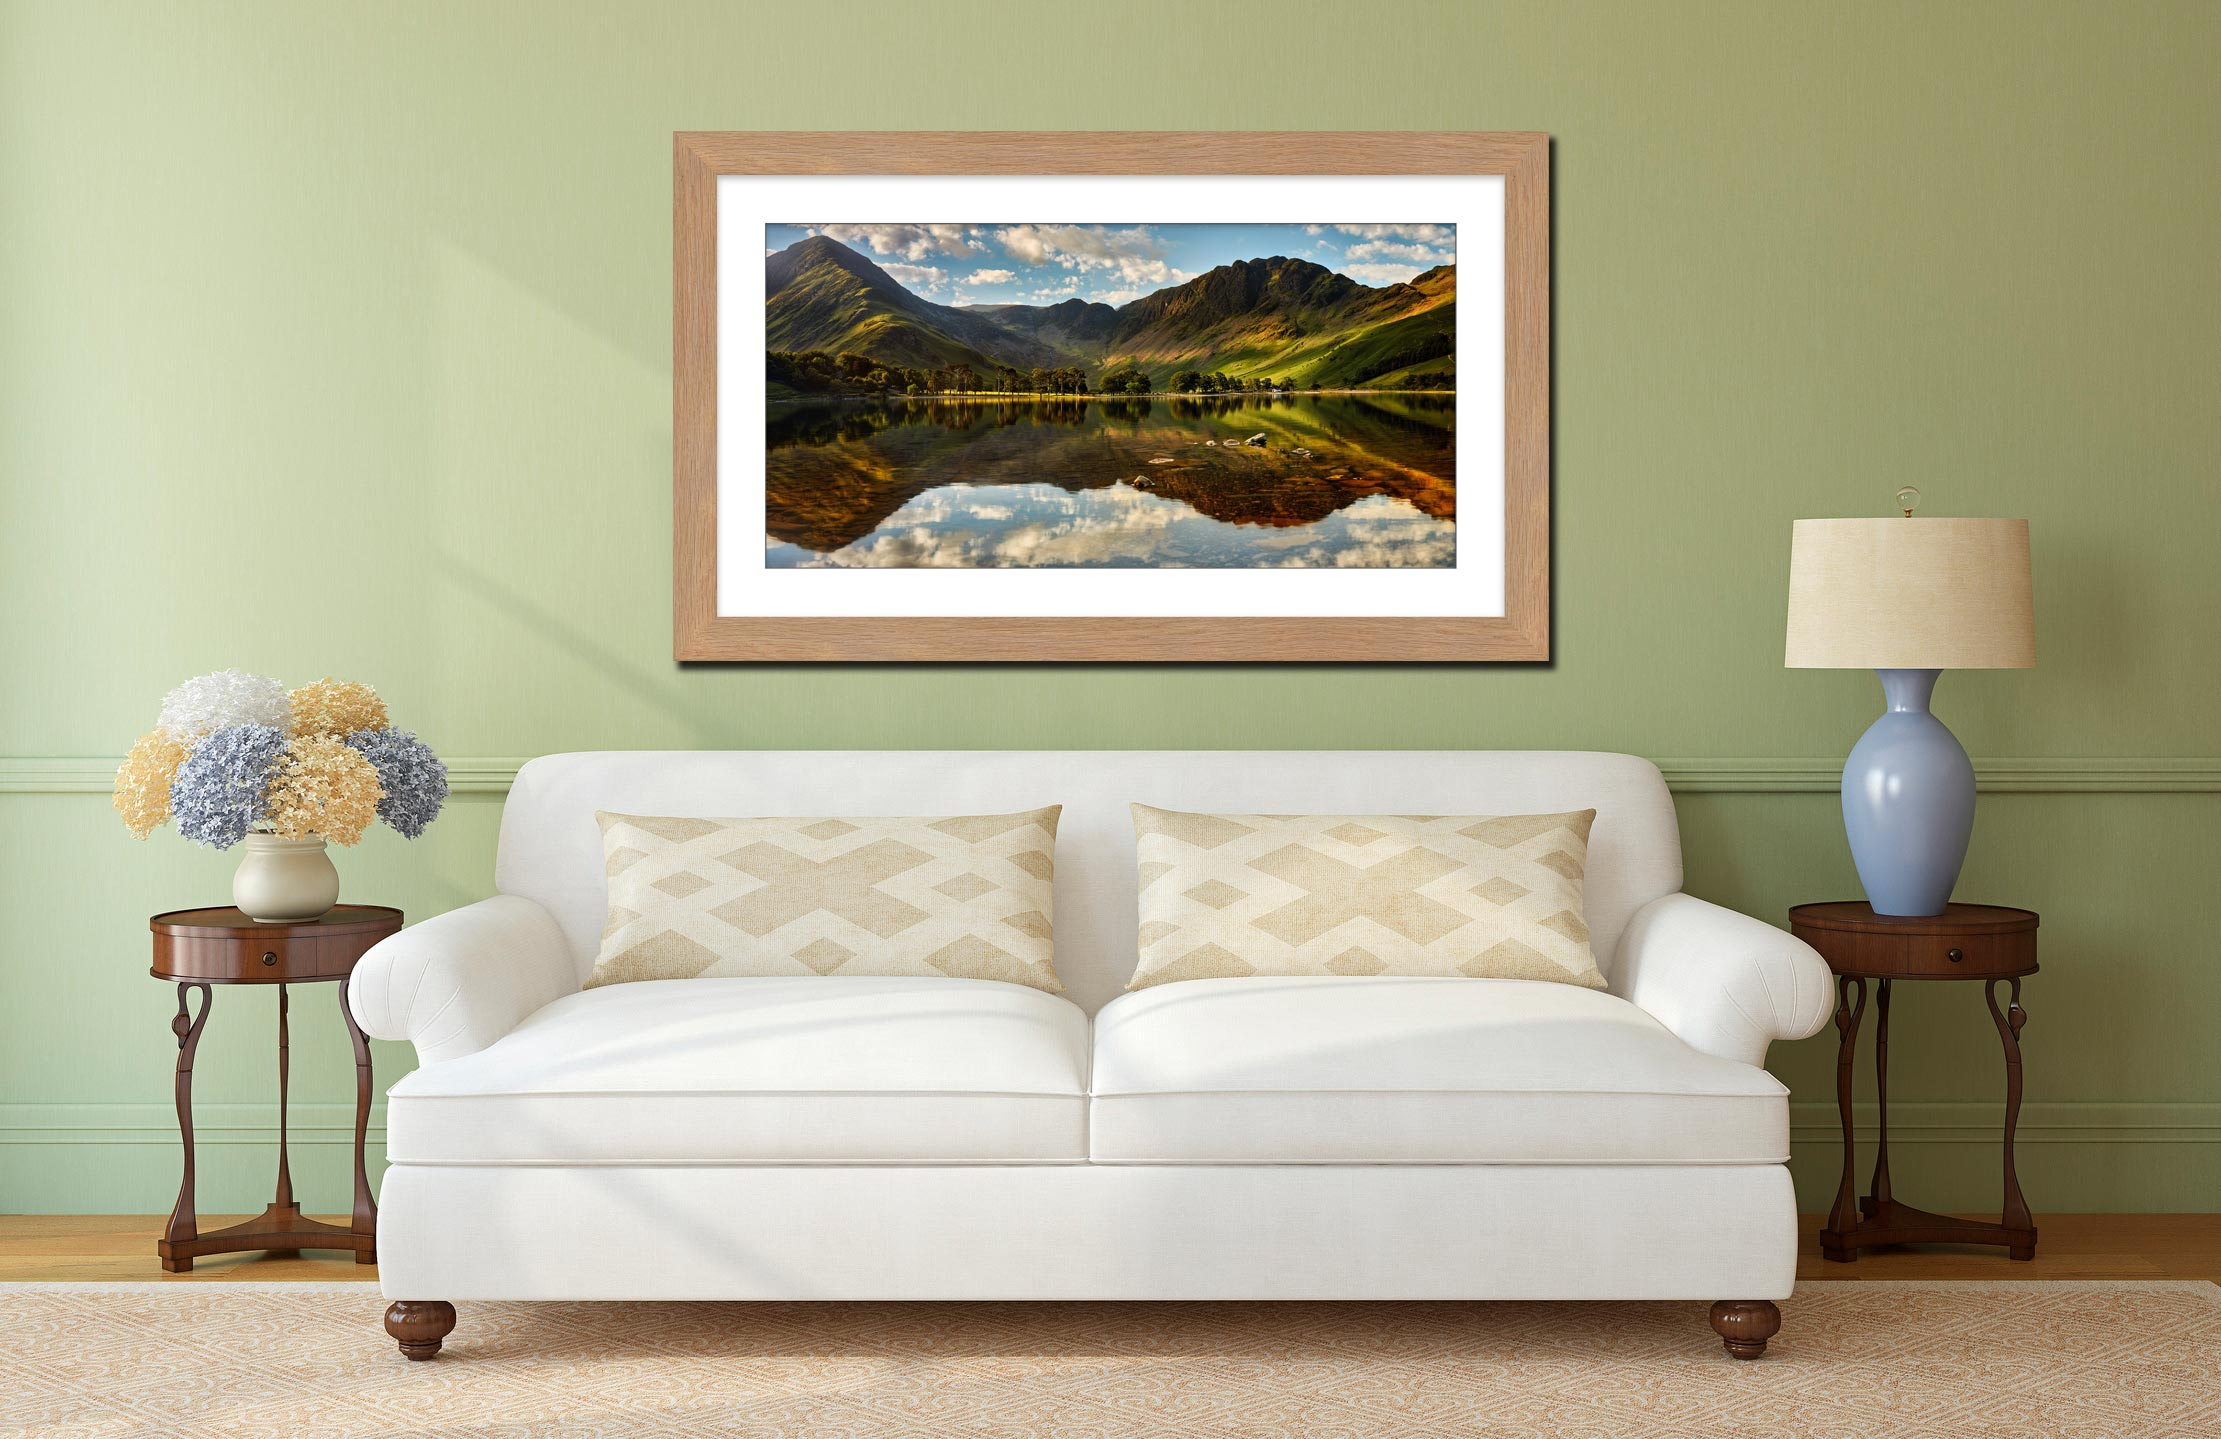 The Greens of Buttermere - Framed Print with Mount on Wall